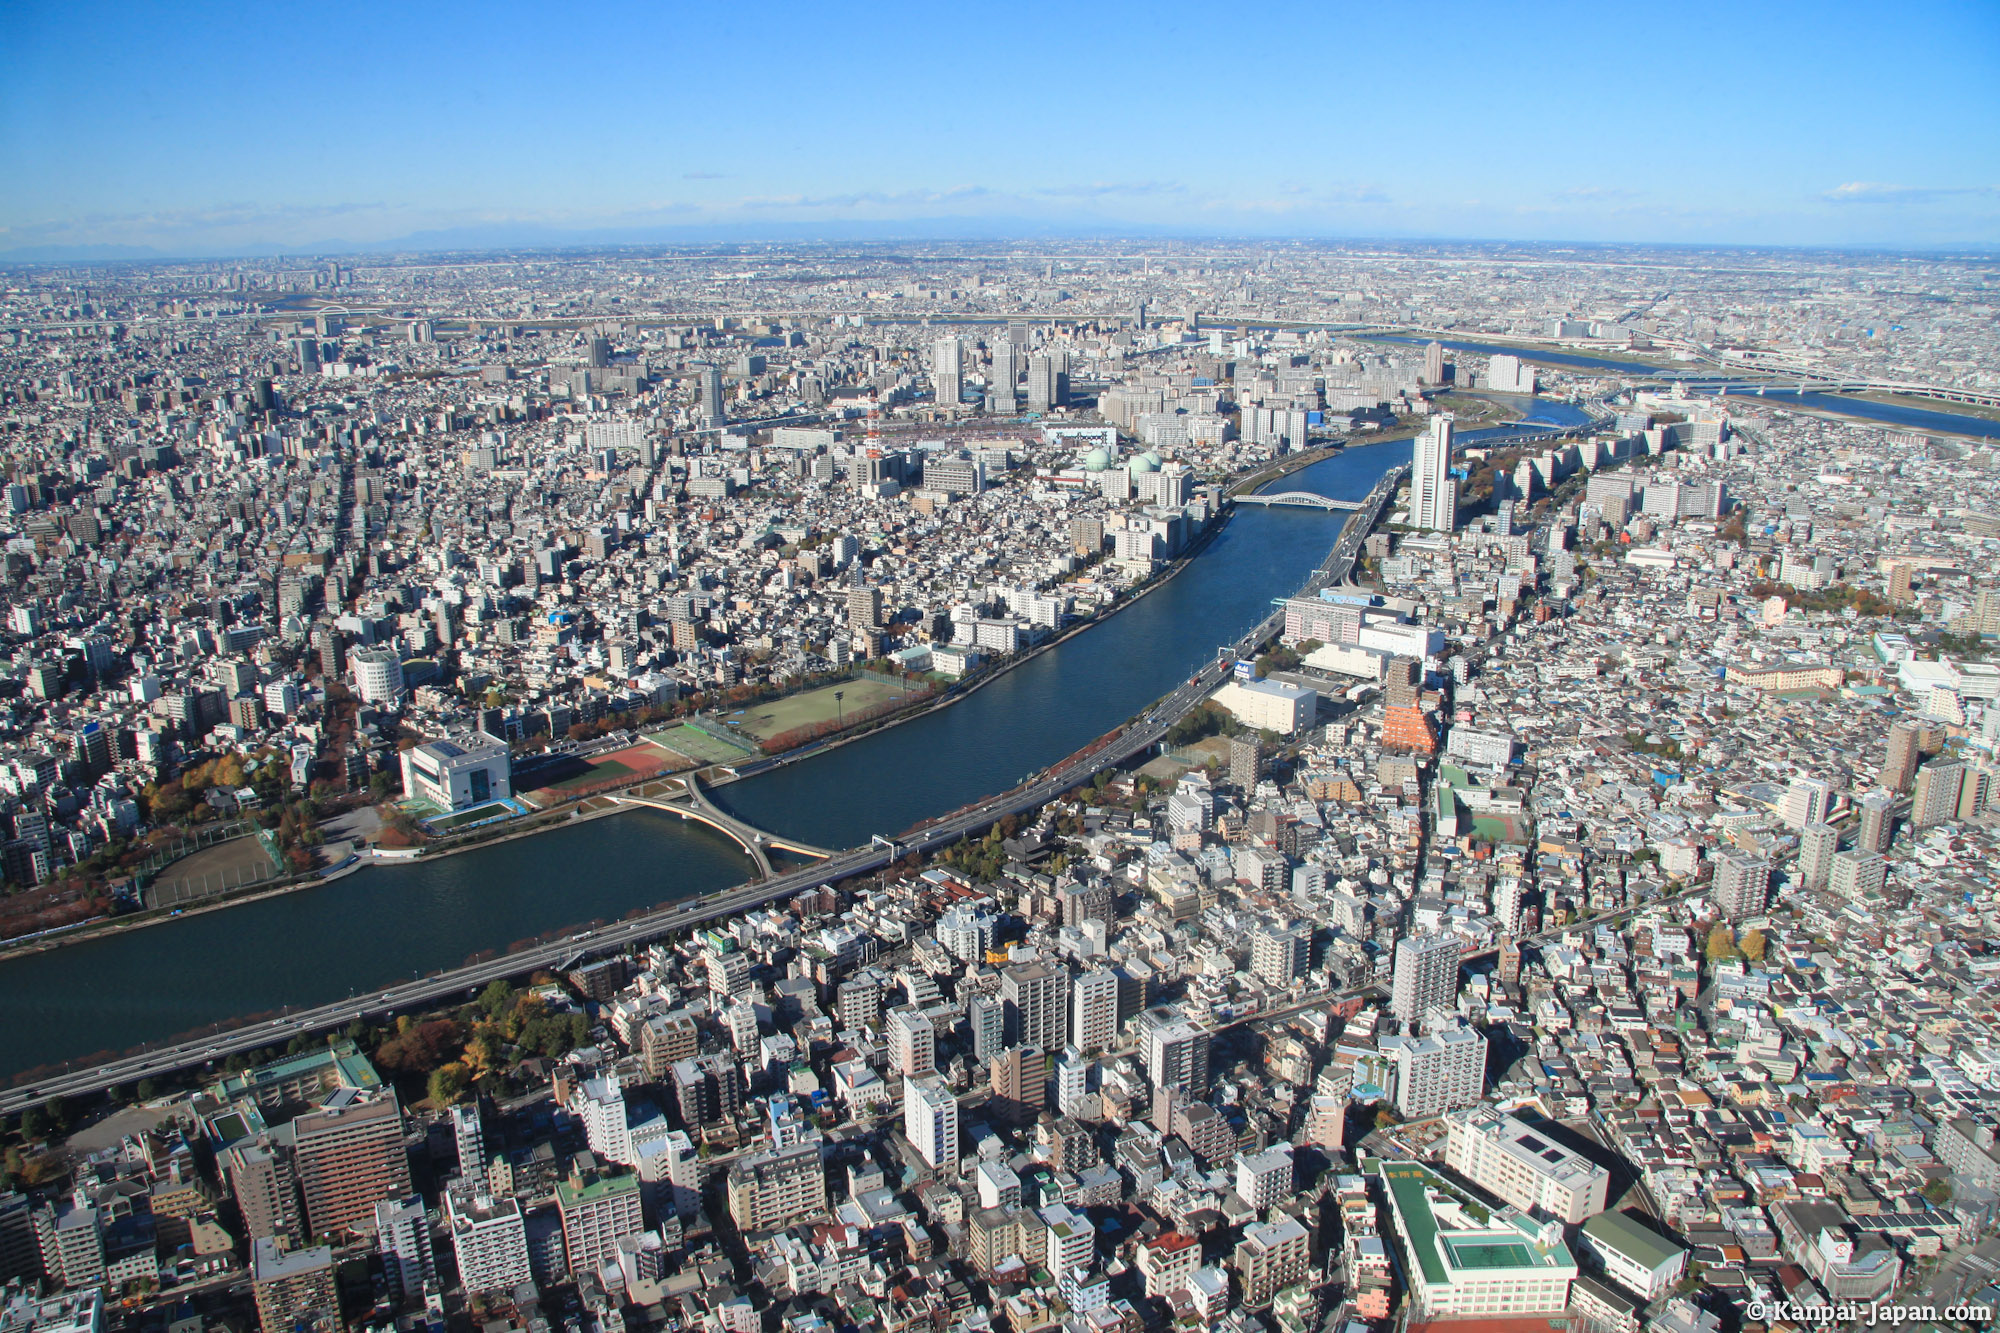 Tokyo SkyTree - The highest tower in Japan